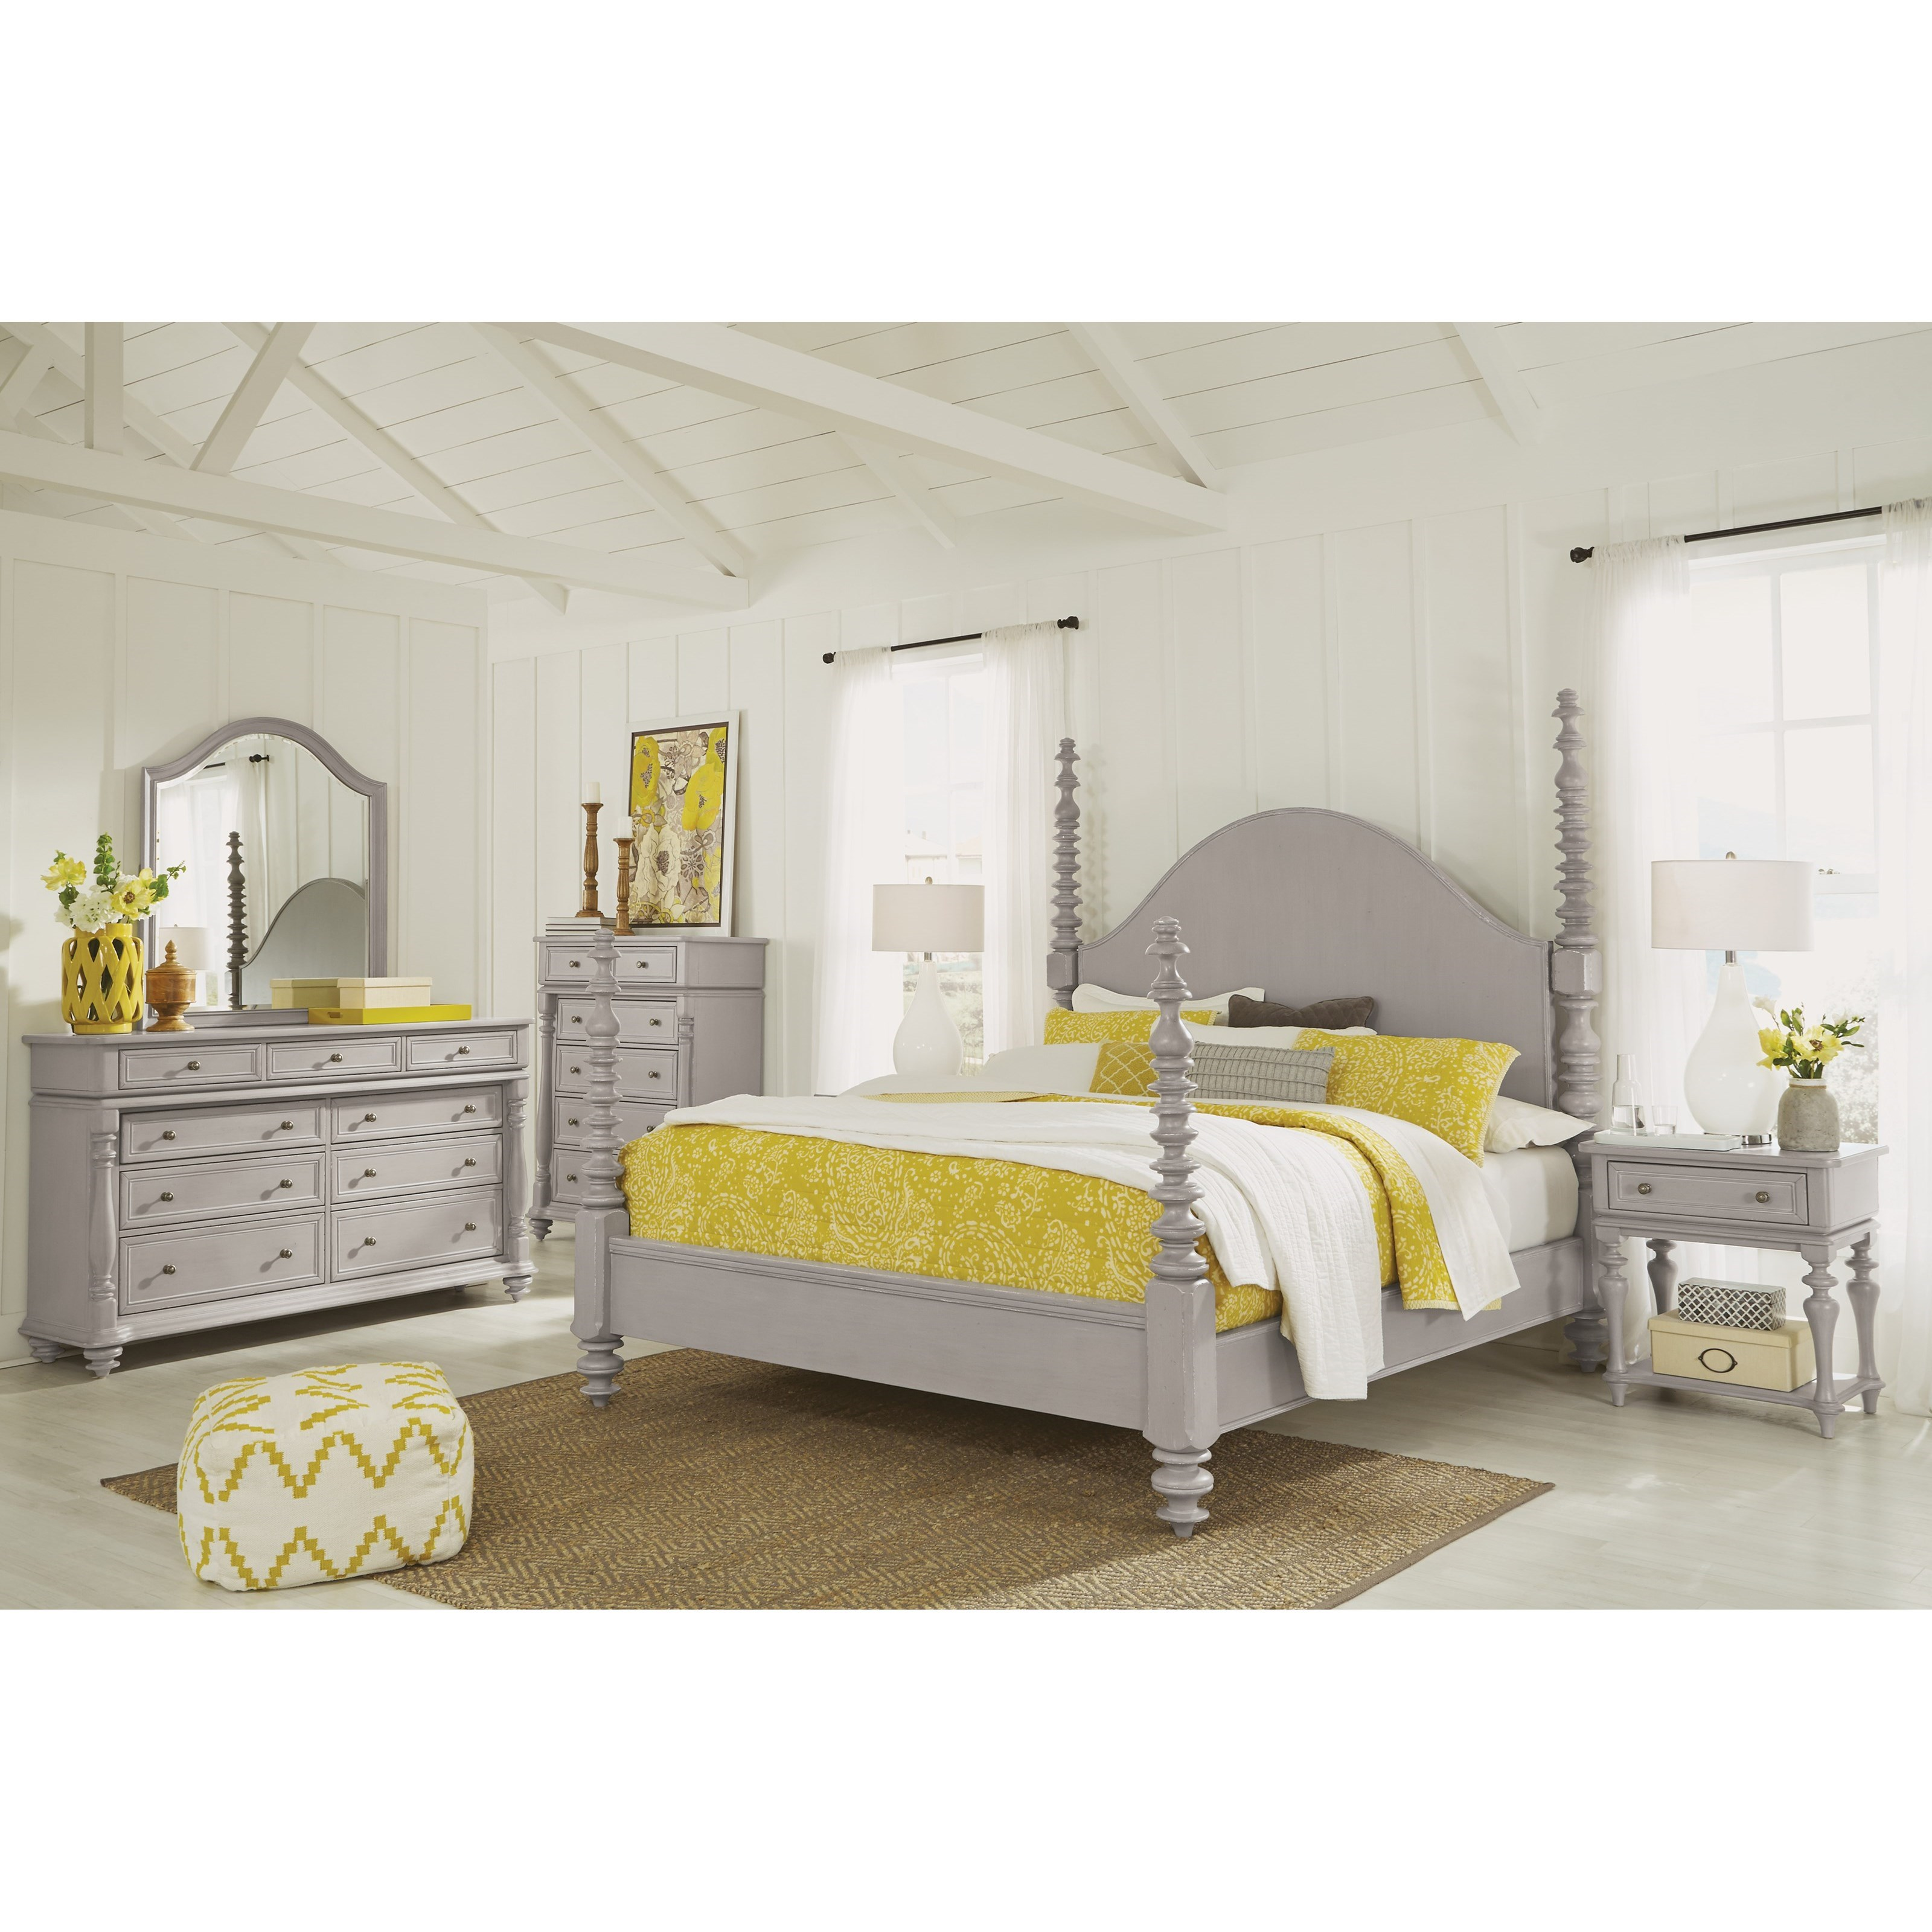 Heirloom Queen Bedroom Group by Flexsteel Wynwood Collection at Northeast Factory Direct